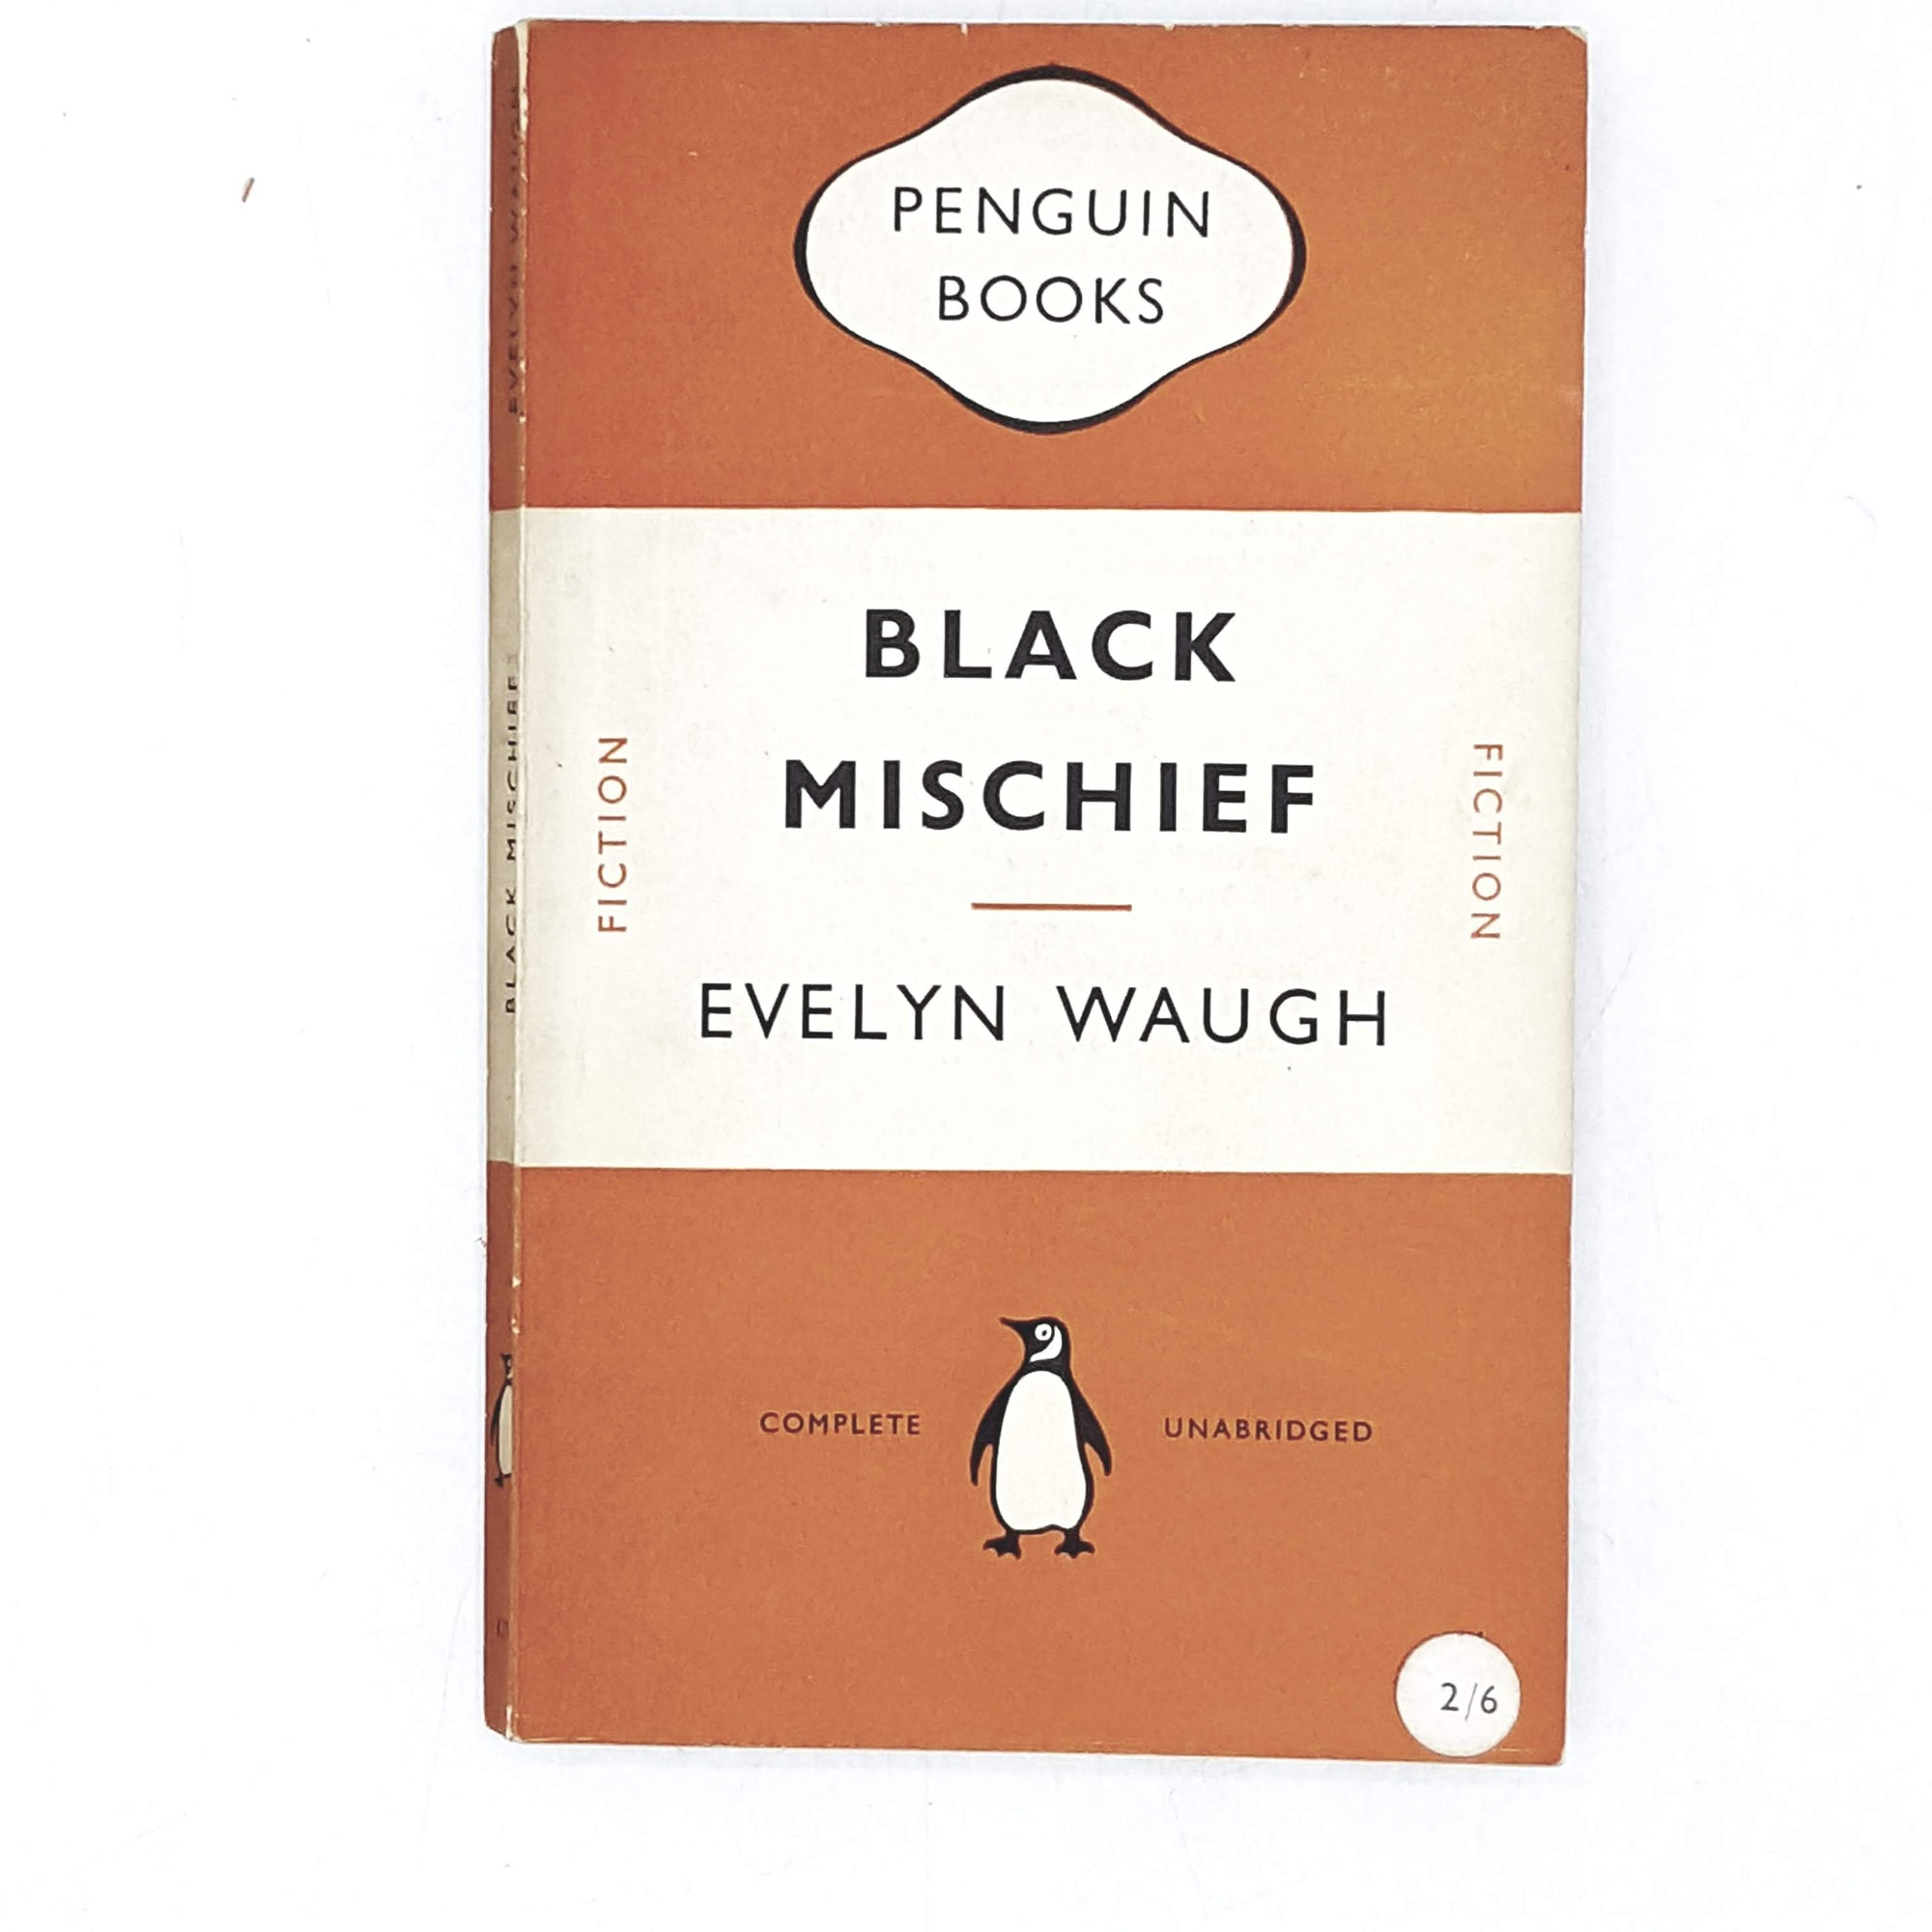 vintage-penguin-black-mischief-by-evelyn-waugh-1954-orange-classic-literature-country-house-library